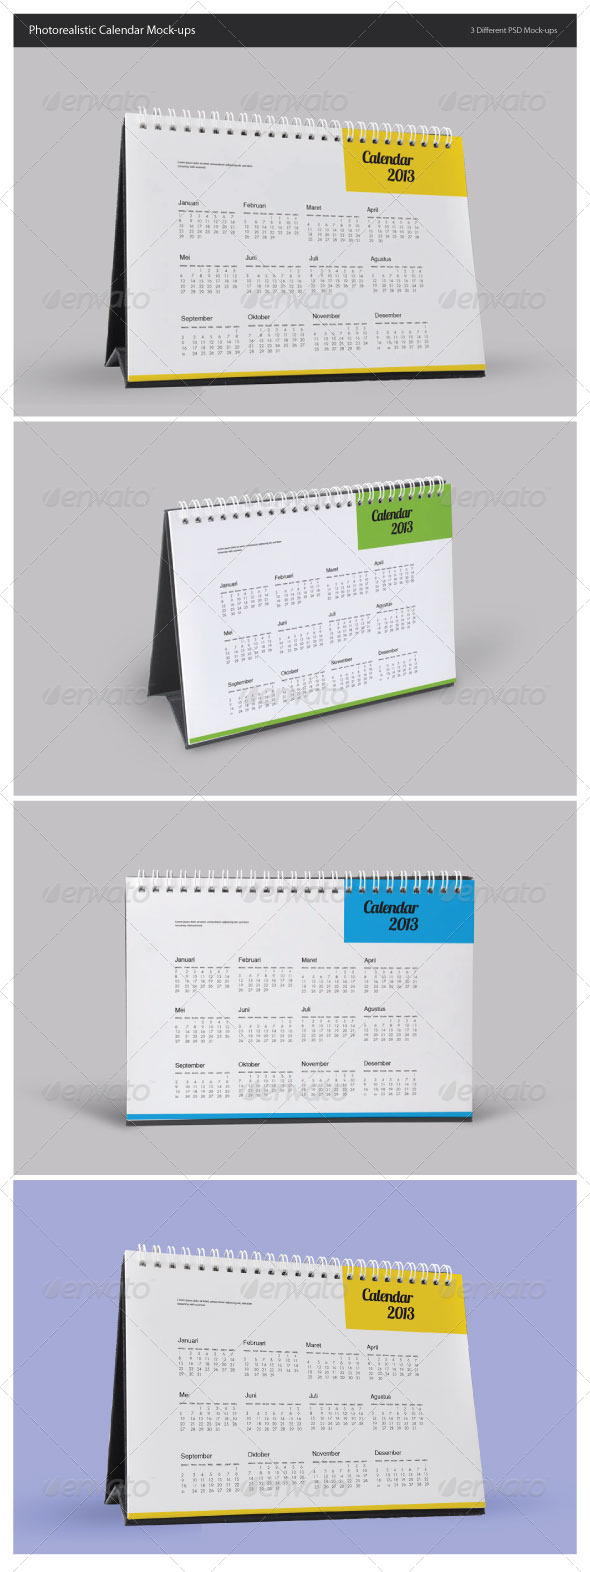 GraphicRiver Photorealistic Calendar Mock-Ups 5051590